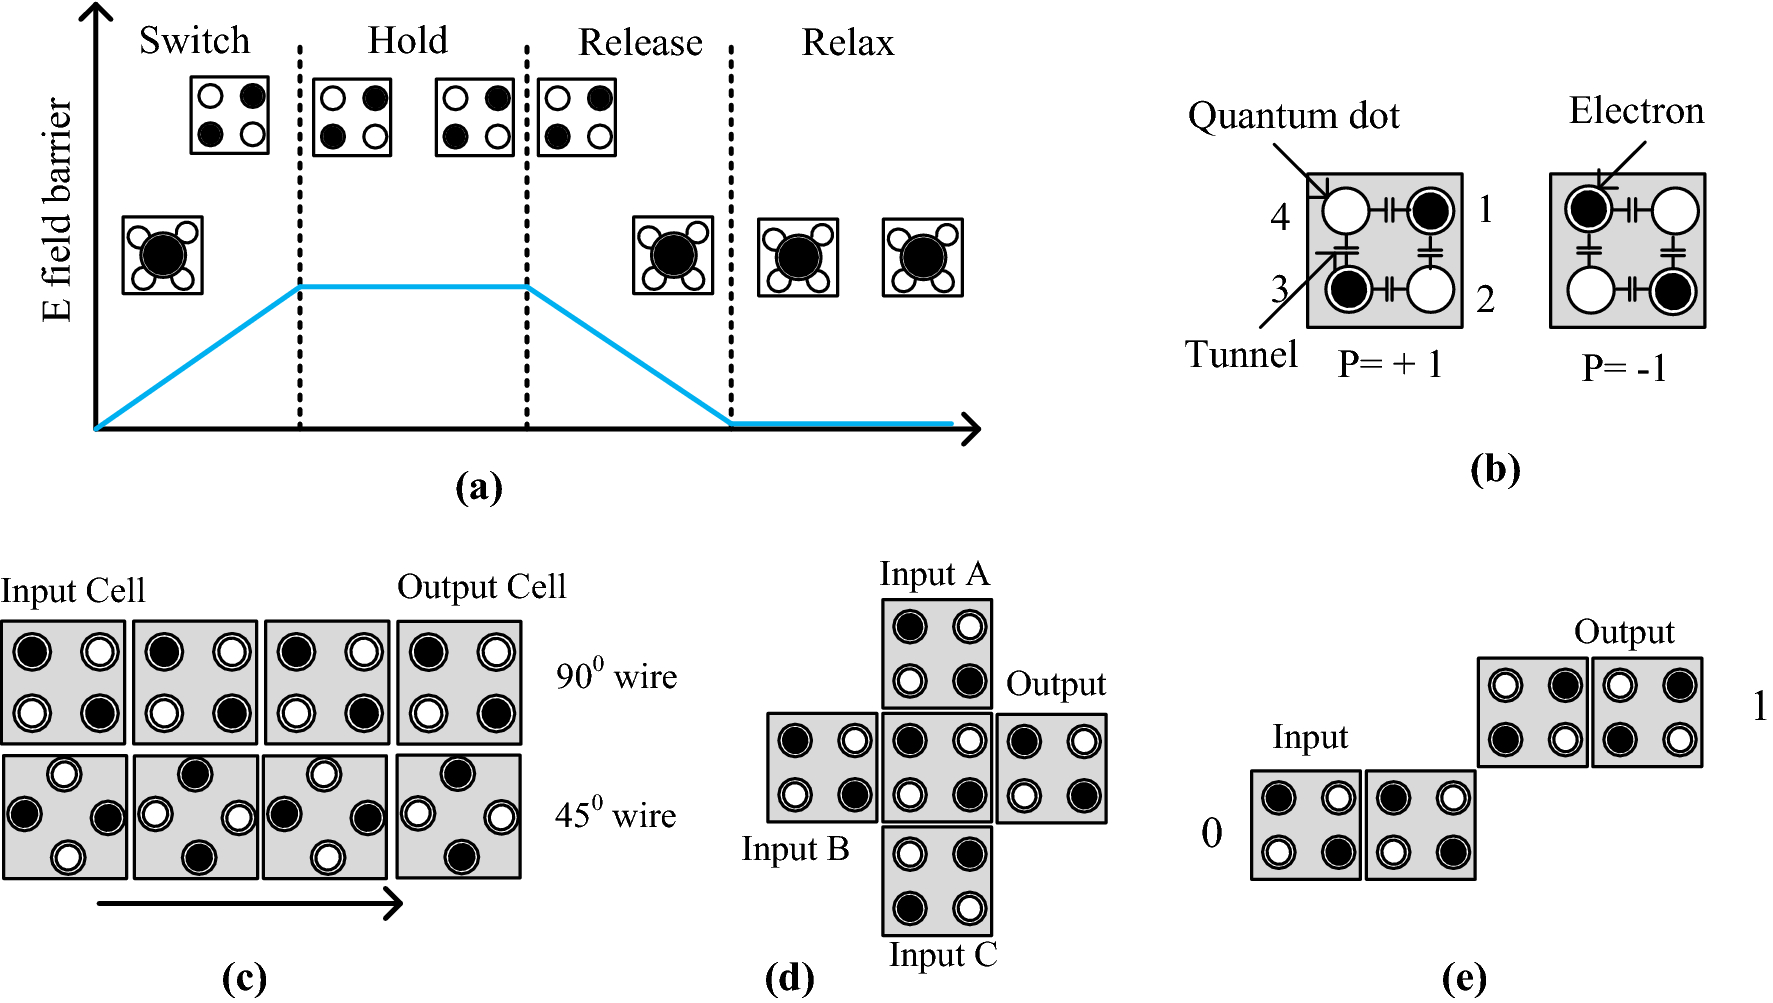 An Optimal Design Of Conservative Efficient Reversible Parity Logic 9 Bit Generator Diagram Open Image In New Window